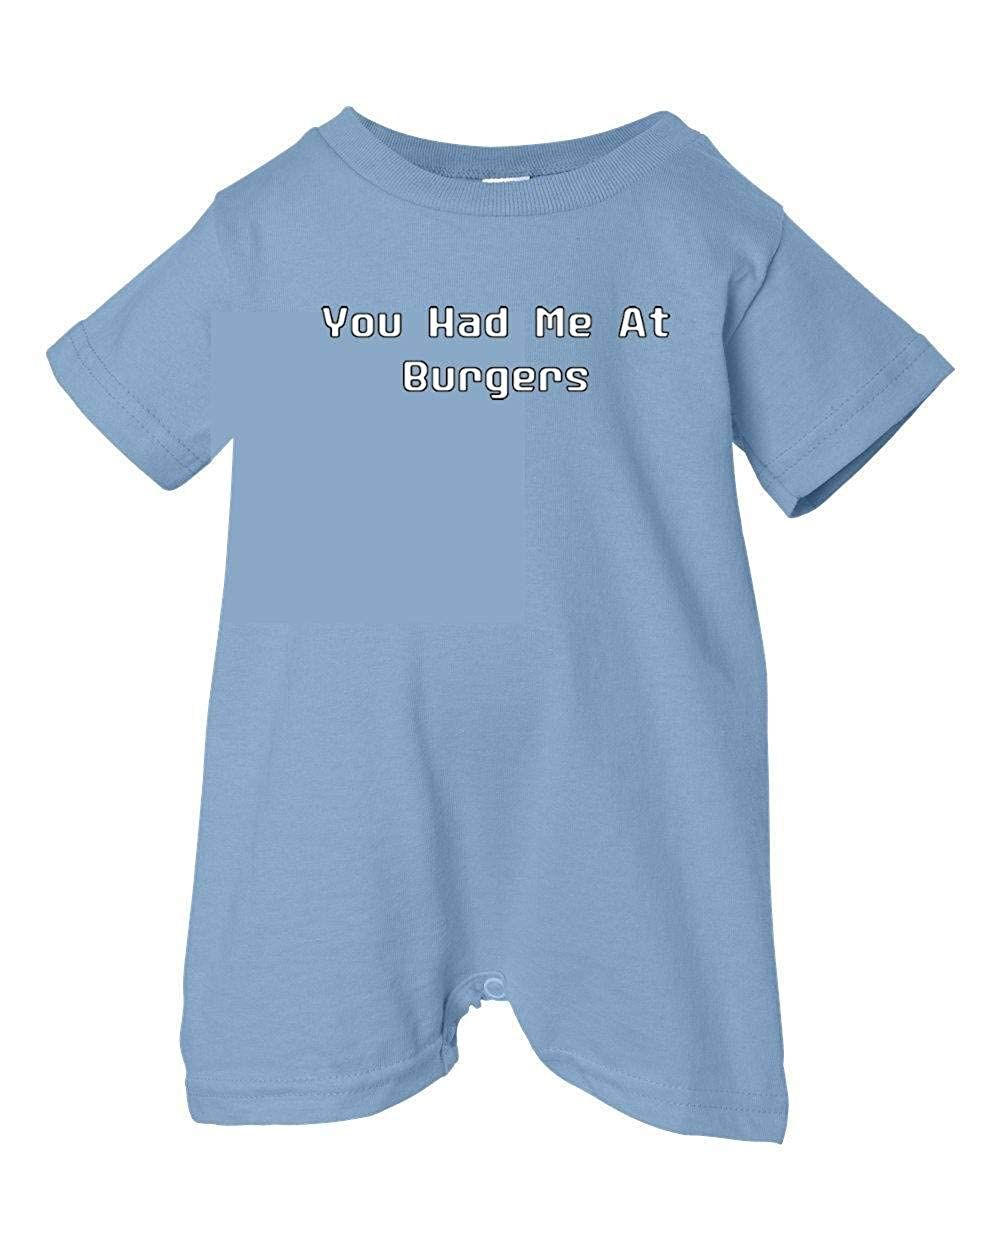 Lt. Blue, 18 Months Tasty Threads Unisex Baby You Had Me At Burgers T-Shirt Romper